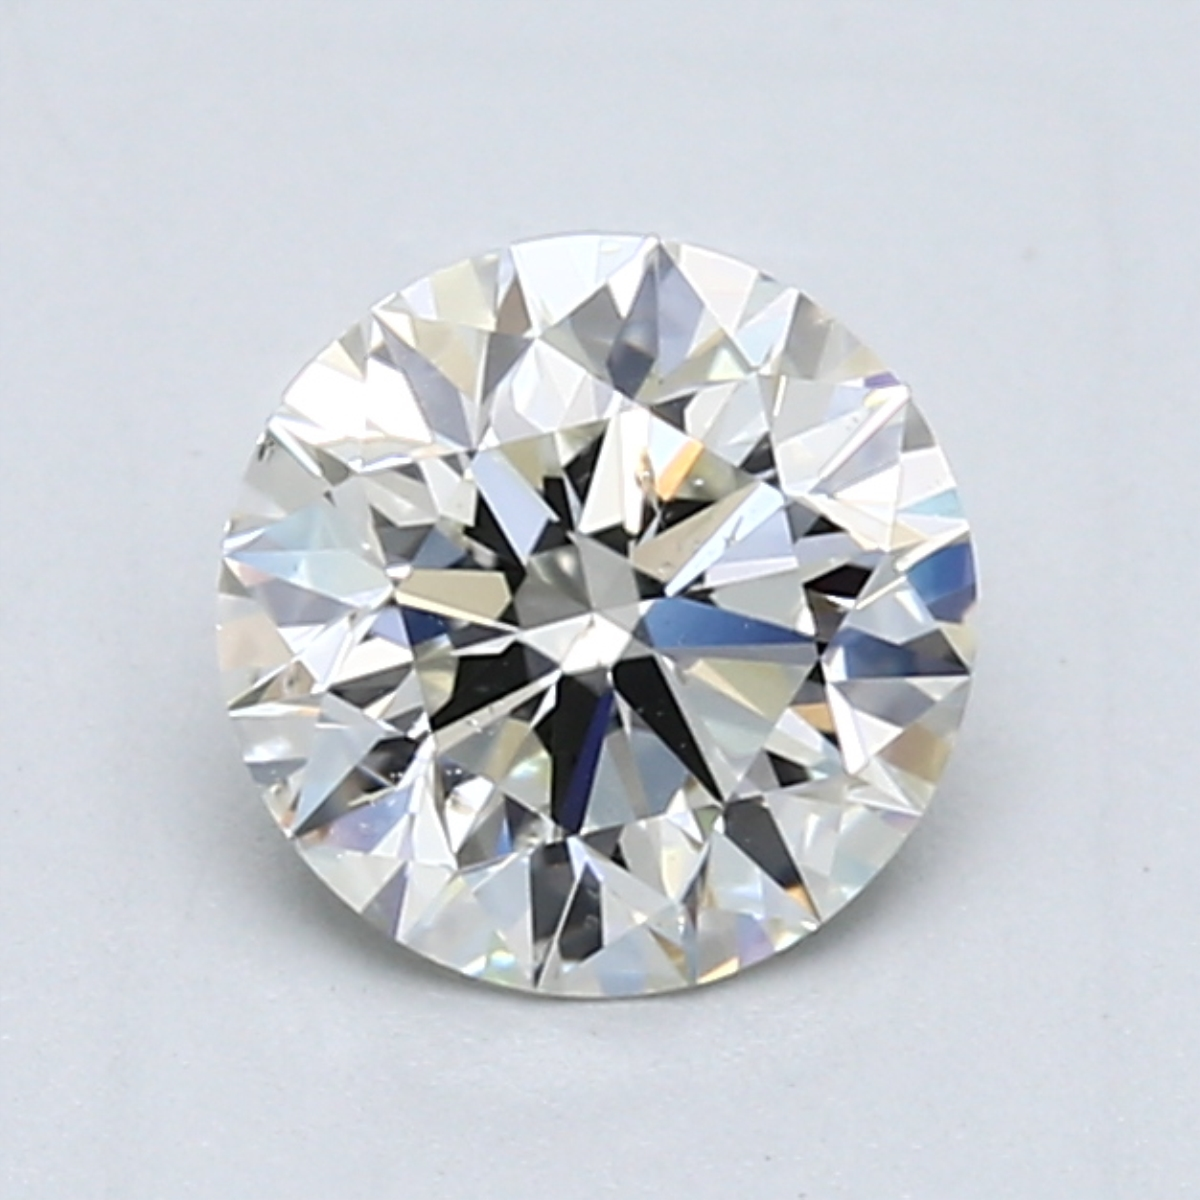 1.23 carat Round Diamond, Ideal cut, graded by the GIA laboratories.